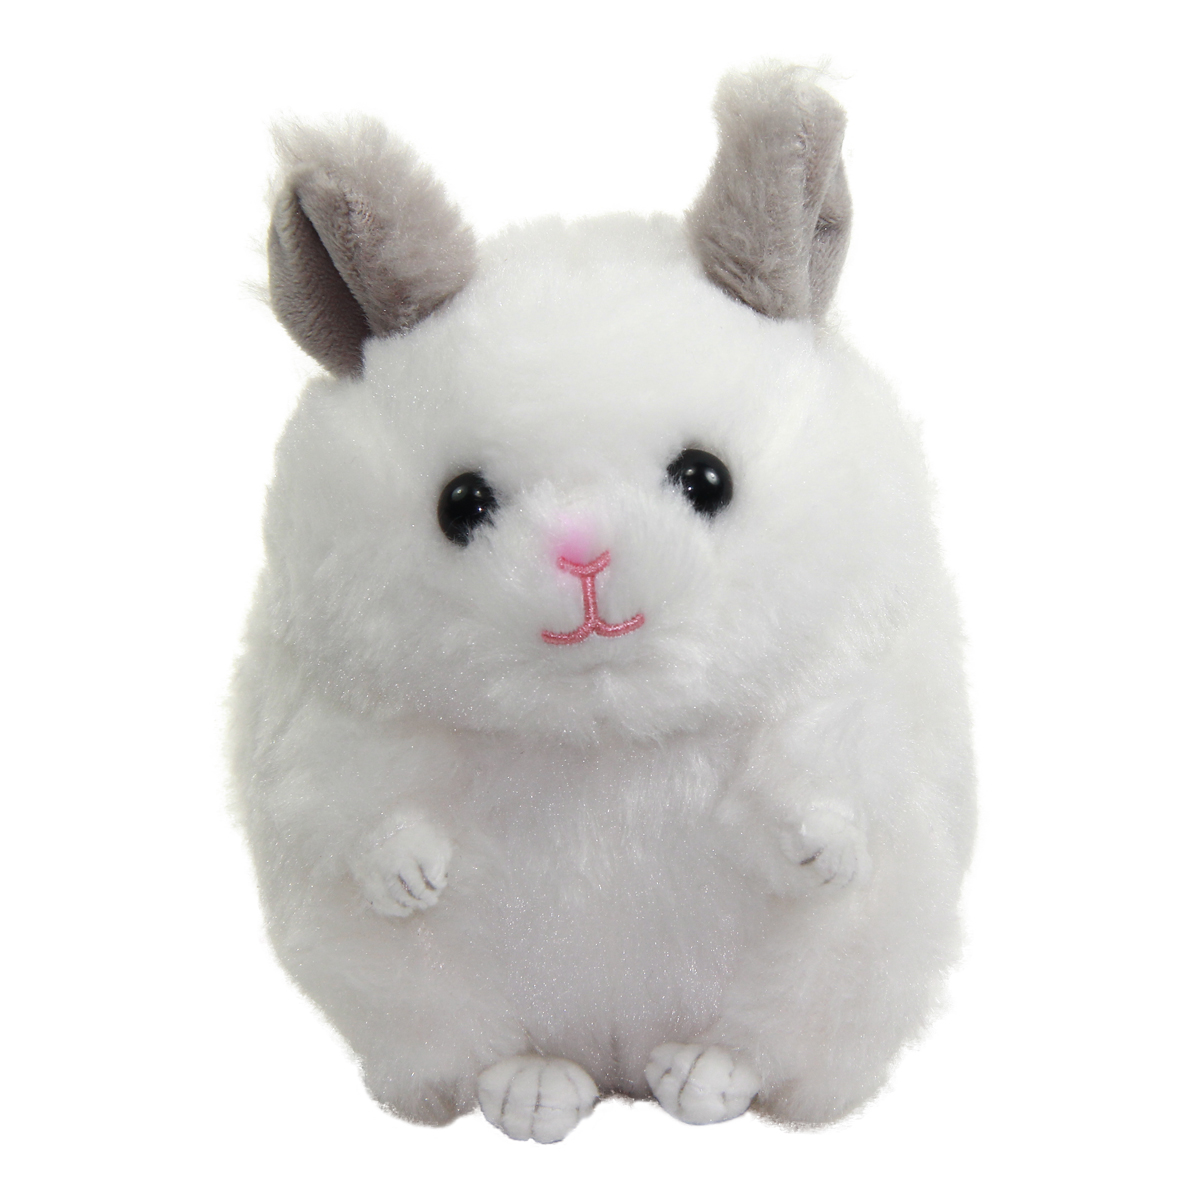 Chinchilla Plushie Kawaii Plush Collection White Standard Size 6 Inches